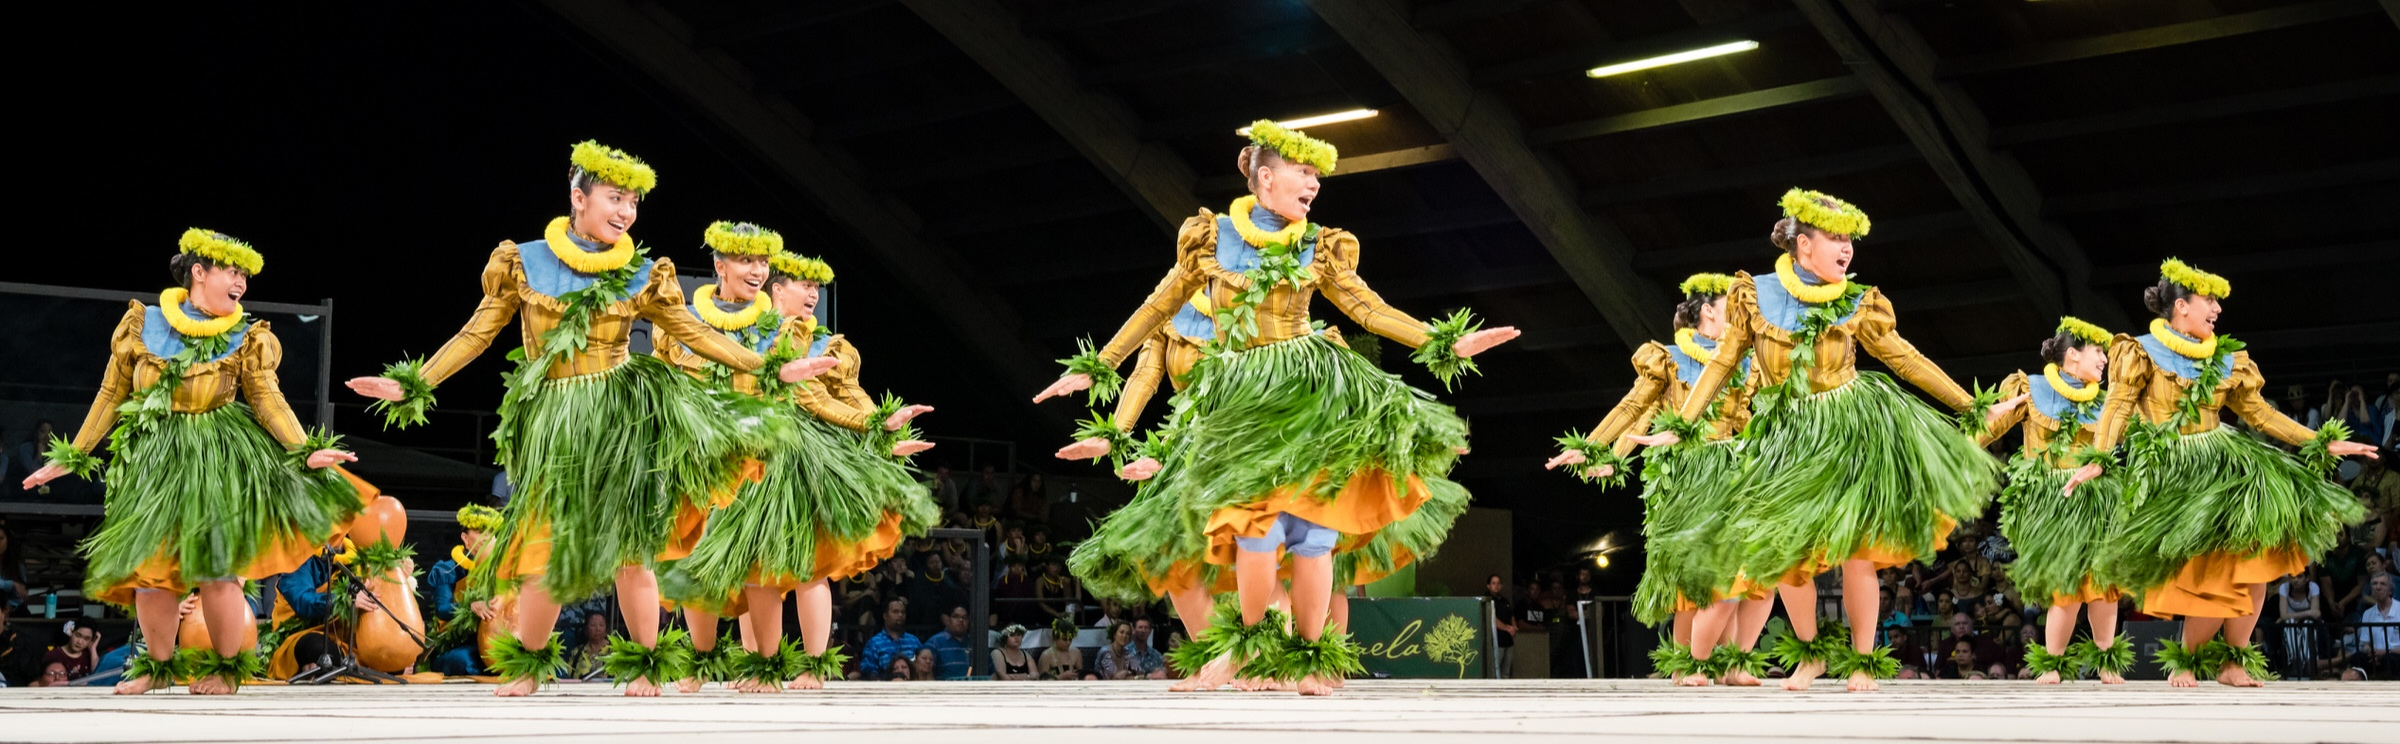 Halau-Manaola-Merrie-Monarch-Hula-Festival-EMotion-Galleries-Ranae-Keane-Photography-Destination-Wedding-Big-Island-Hawaii_003_180406_.jpg